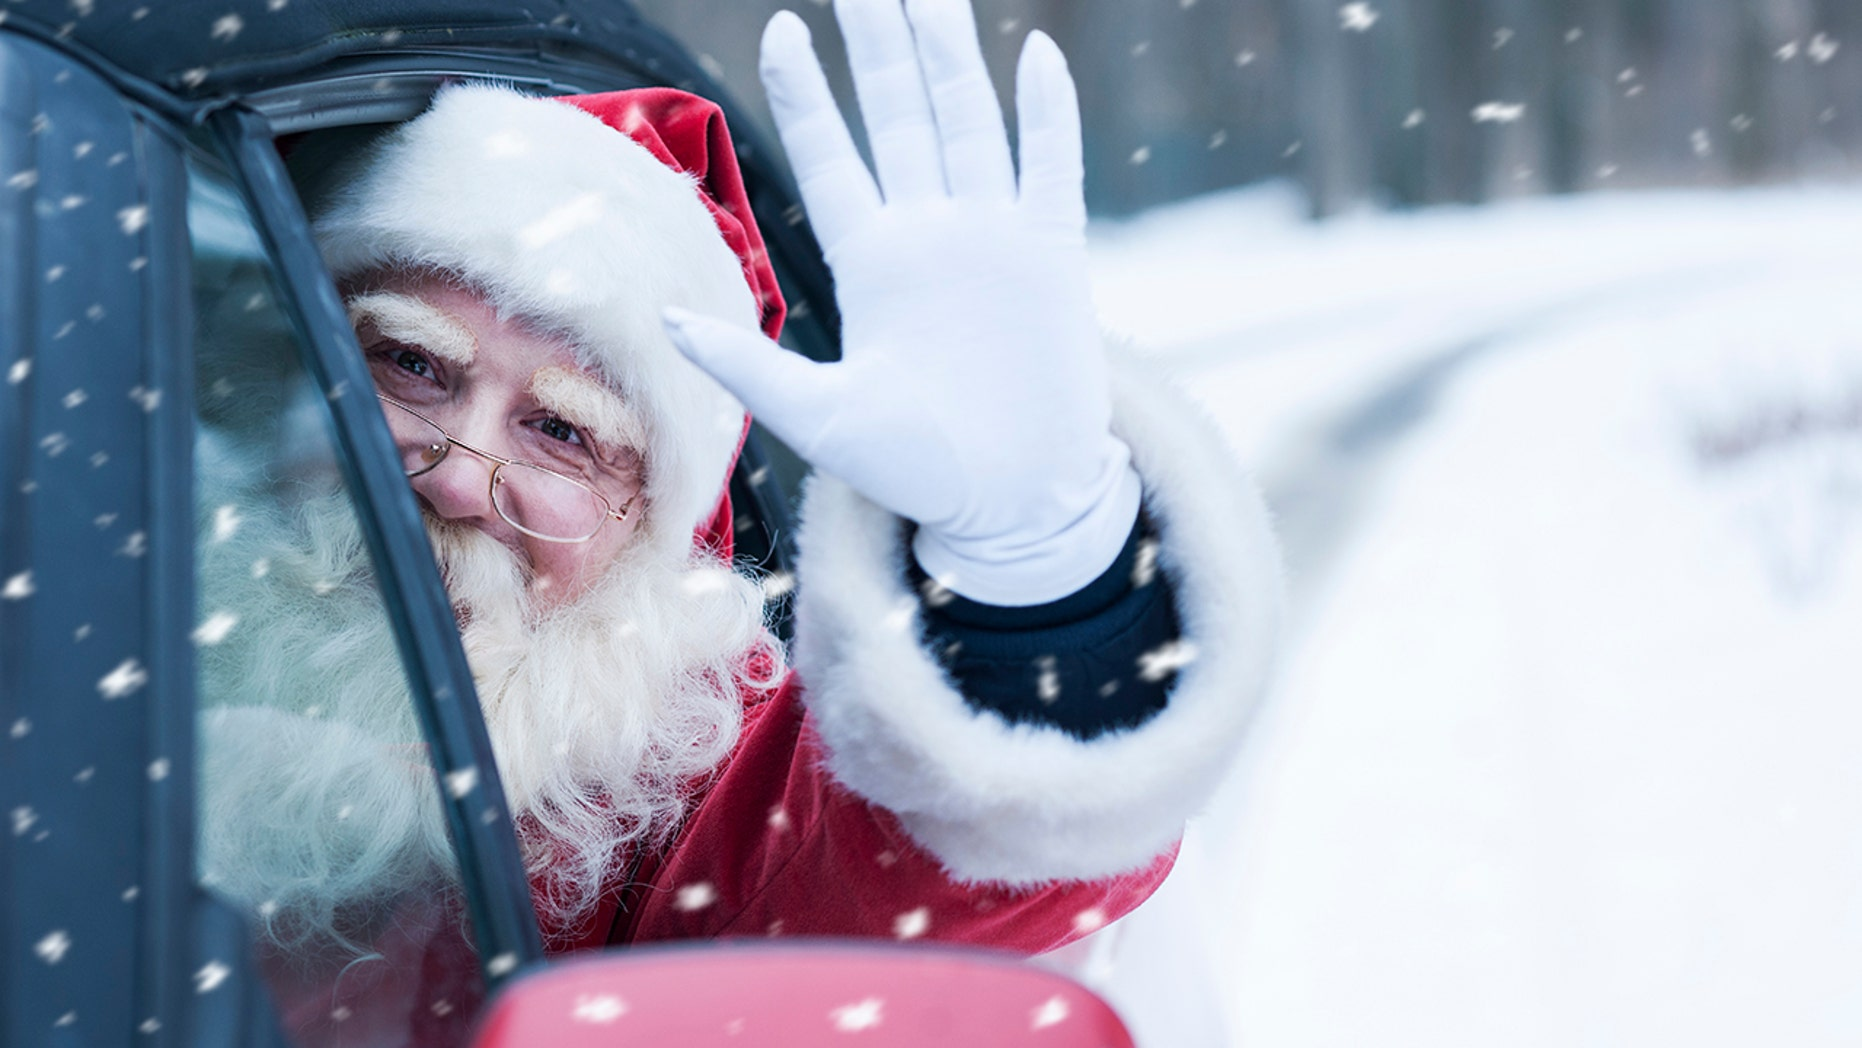 A man dressed as Santa was reportedly shot at while driving on a Texas freeway.